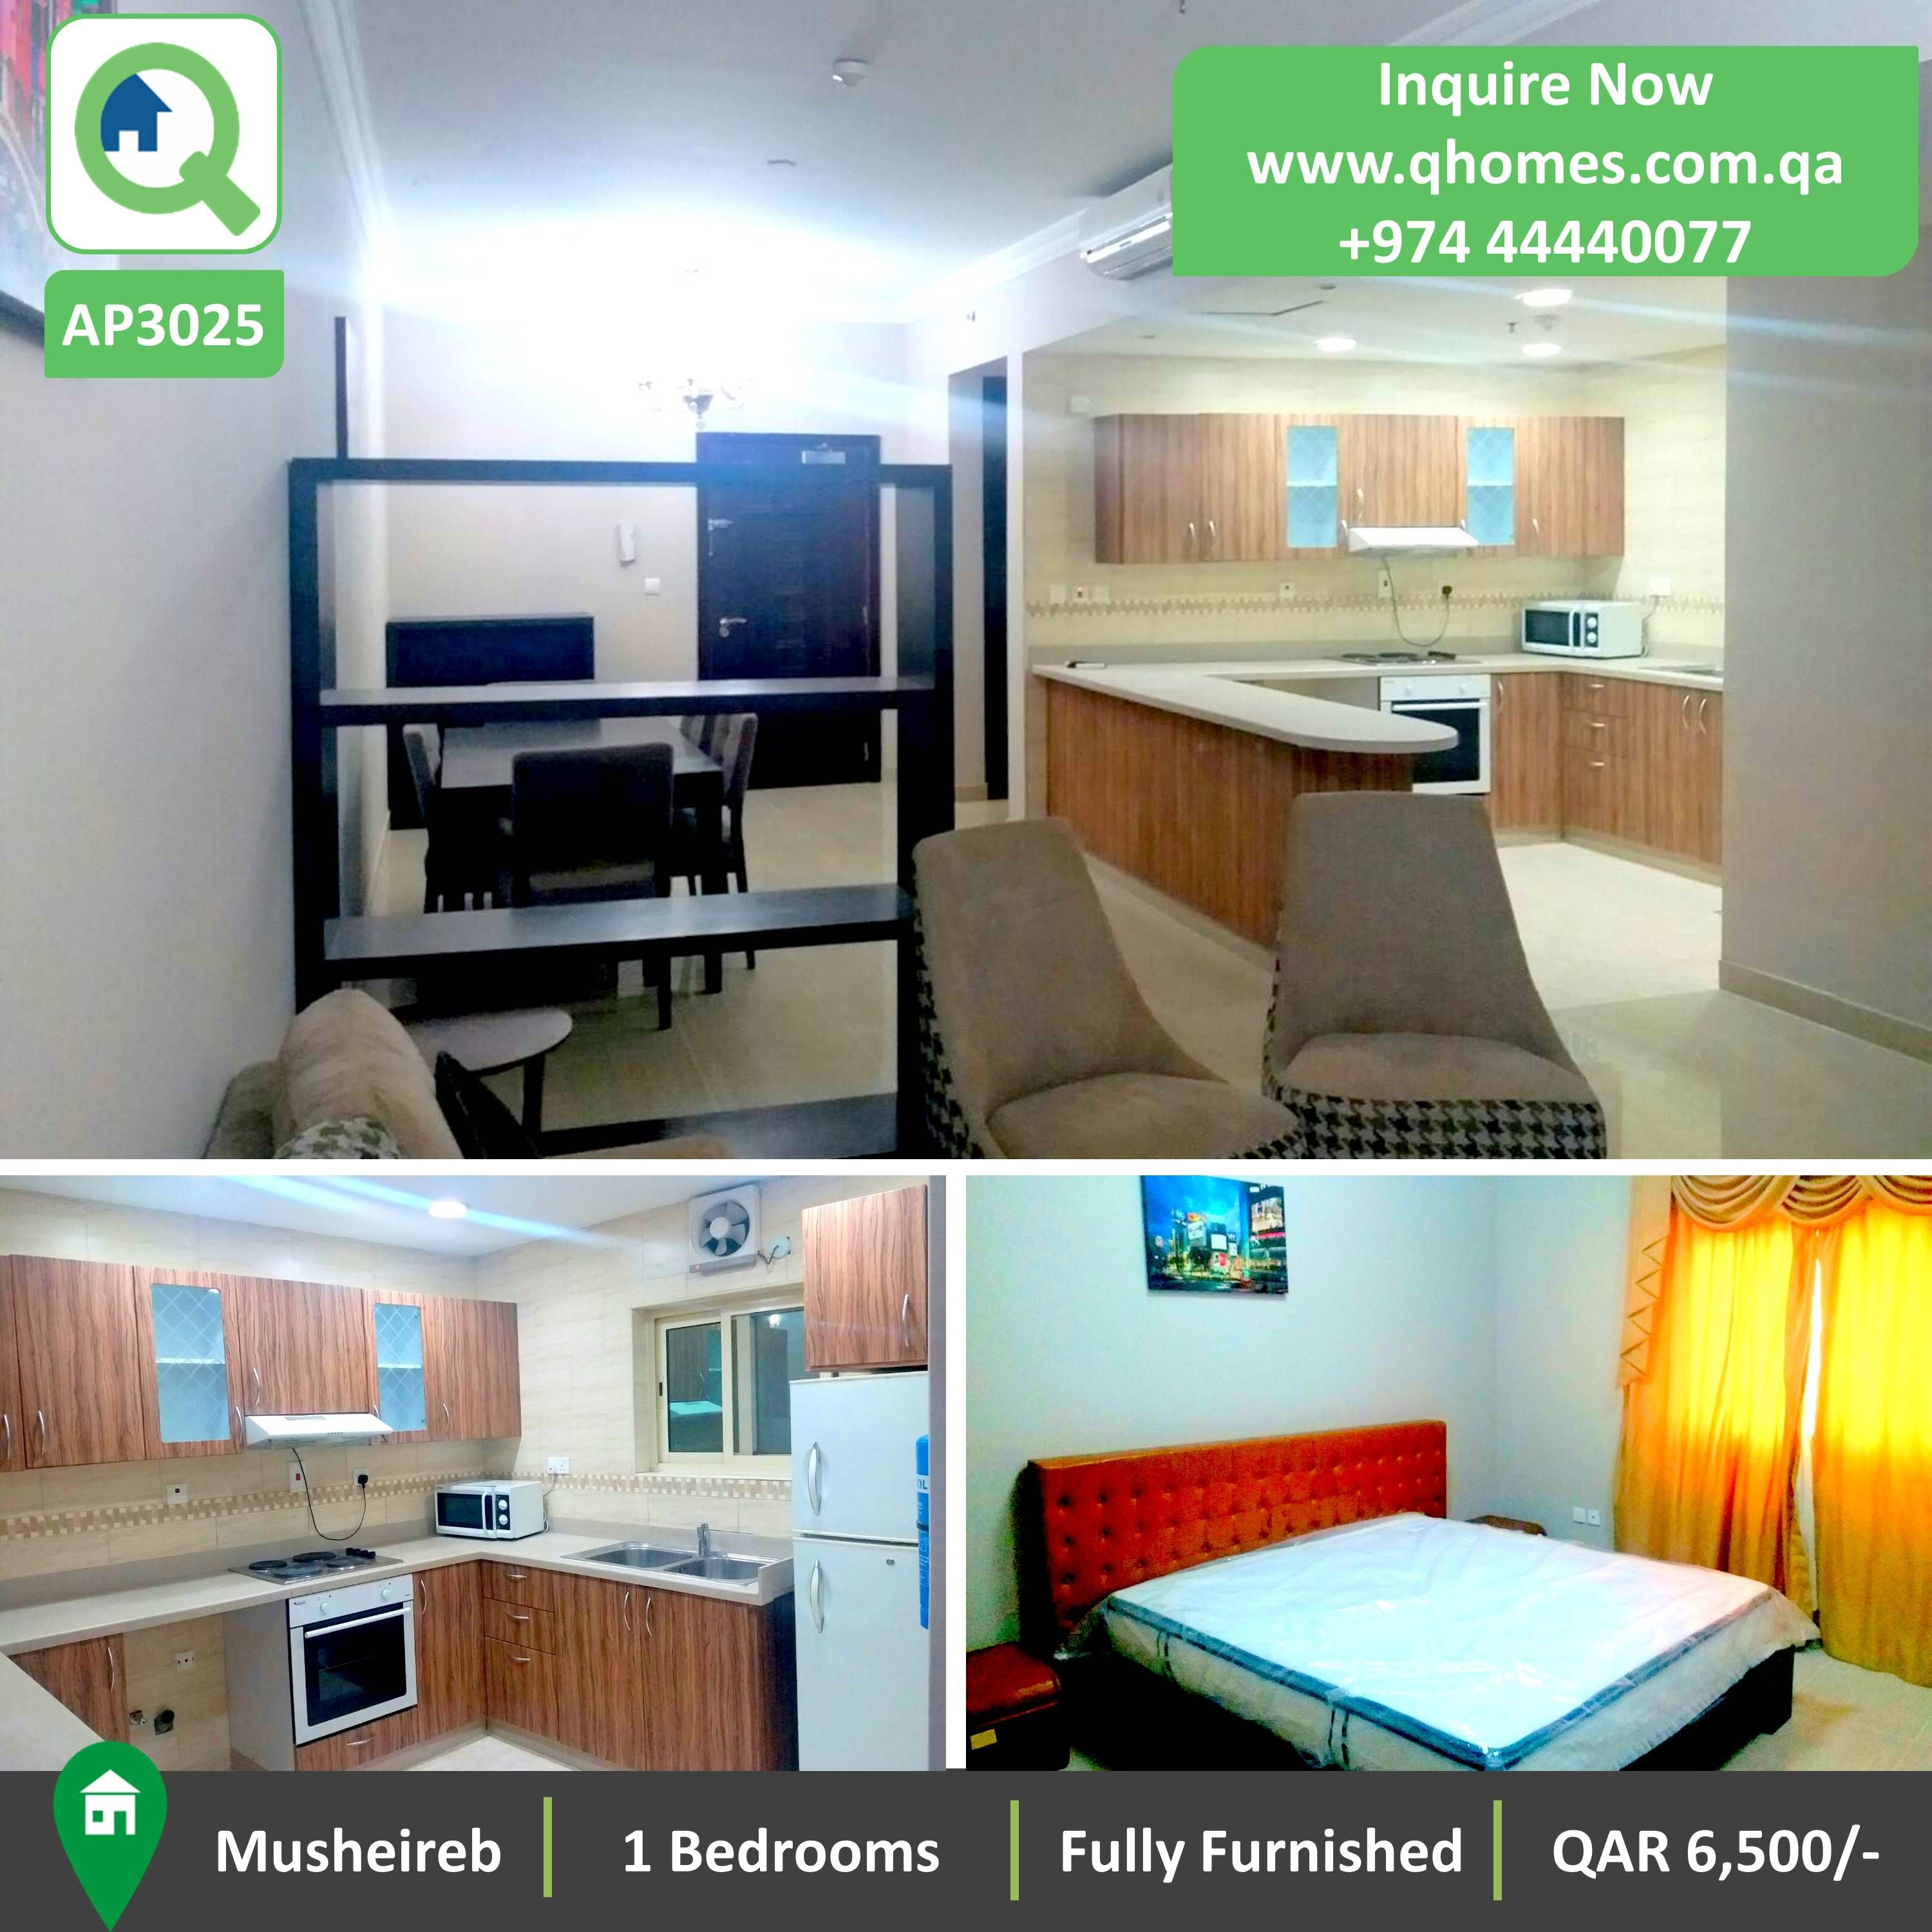 Apartment For Rent In Musheireb